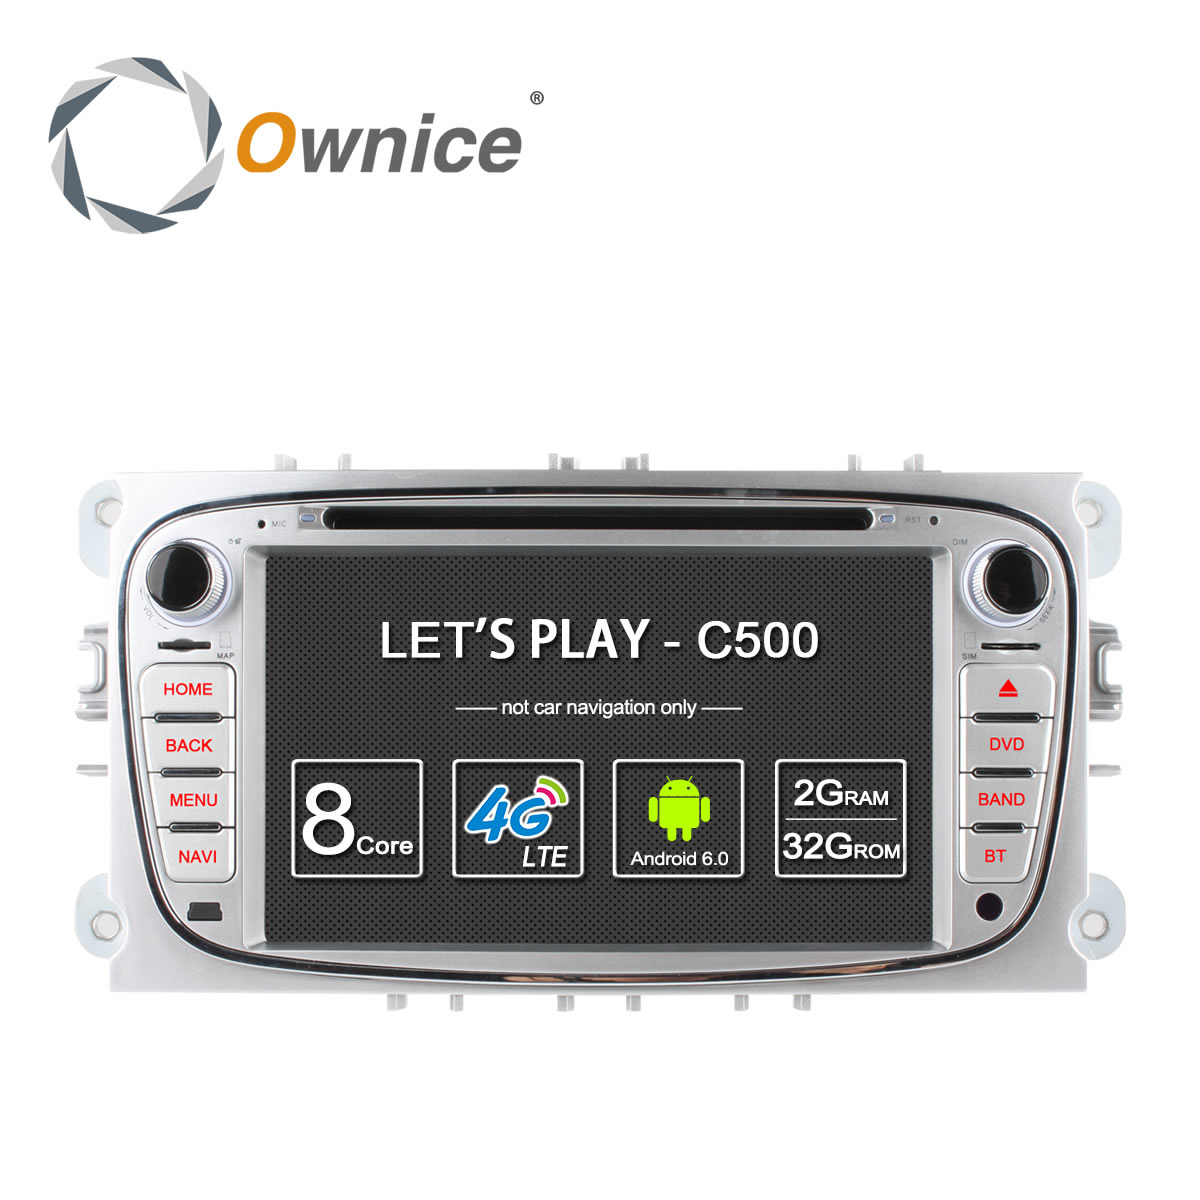 Ownice C500 4g LTE Android 6.0 Octa 8 Core Auto DVD Player GPS Für FORD Mondeo S-MAX Verbinden FOKUS 2 2008 2009 2010 2011 32g ROM